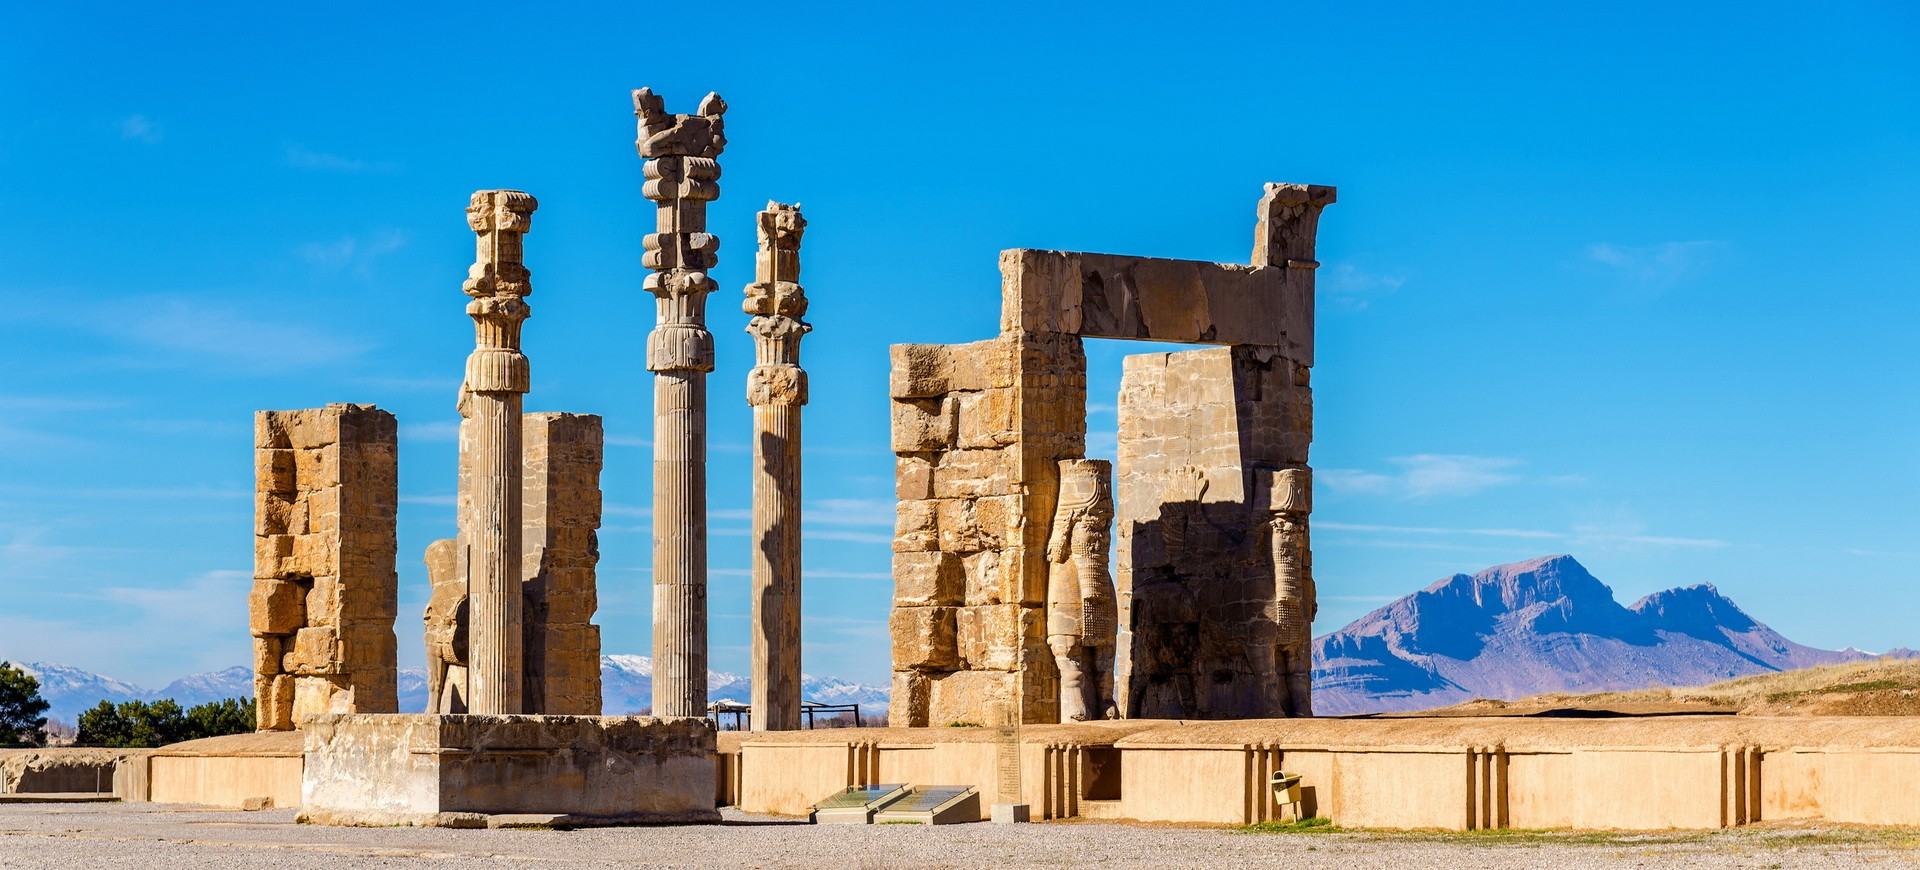 Site antique de Persepolis